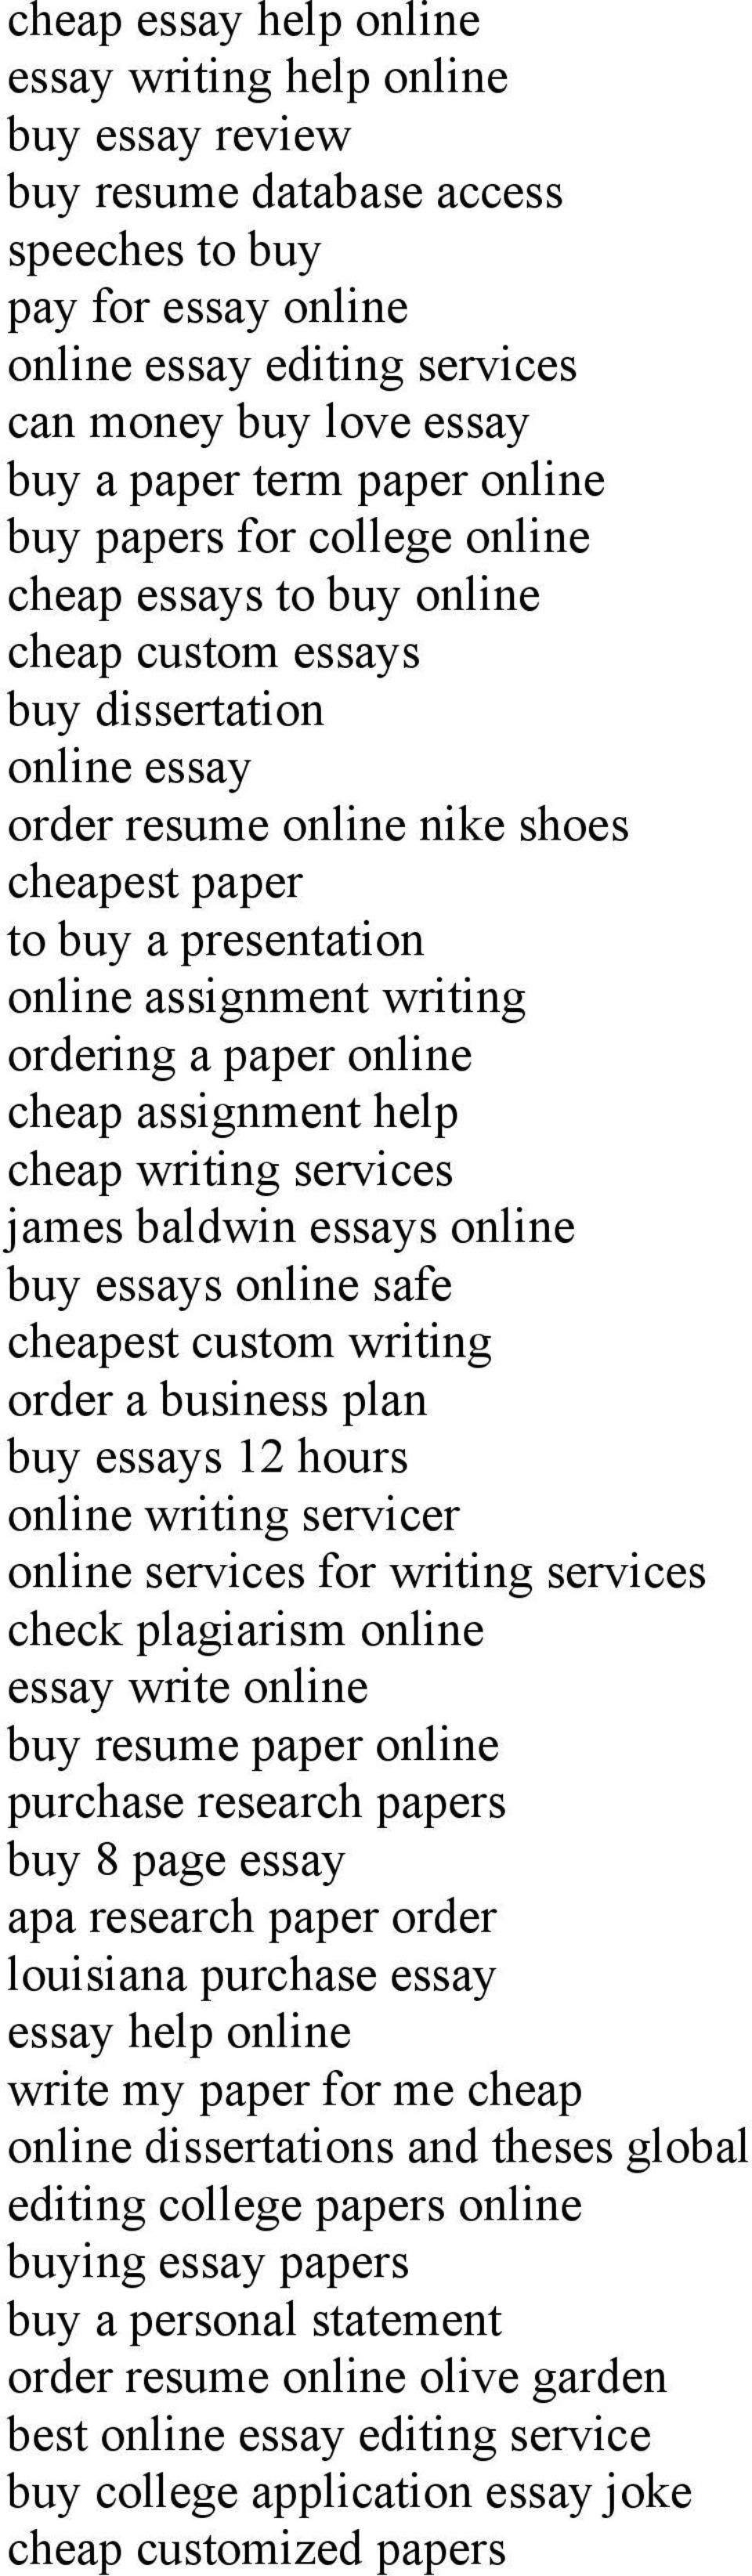 assignment writing ordering a paper online cheap assignment help cheap writing services james baldwin essays online buy essays online safe cheapest custom writing order a business plan buy essays 12